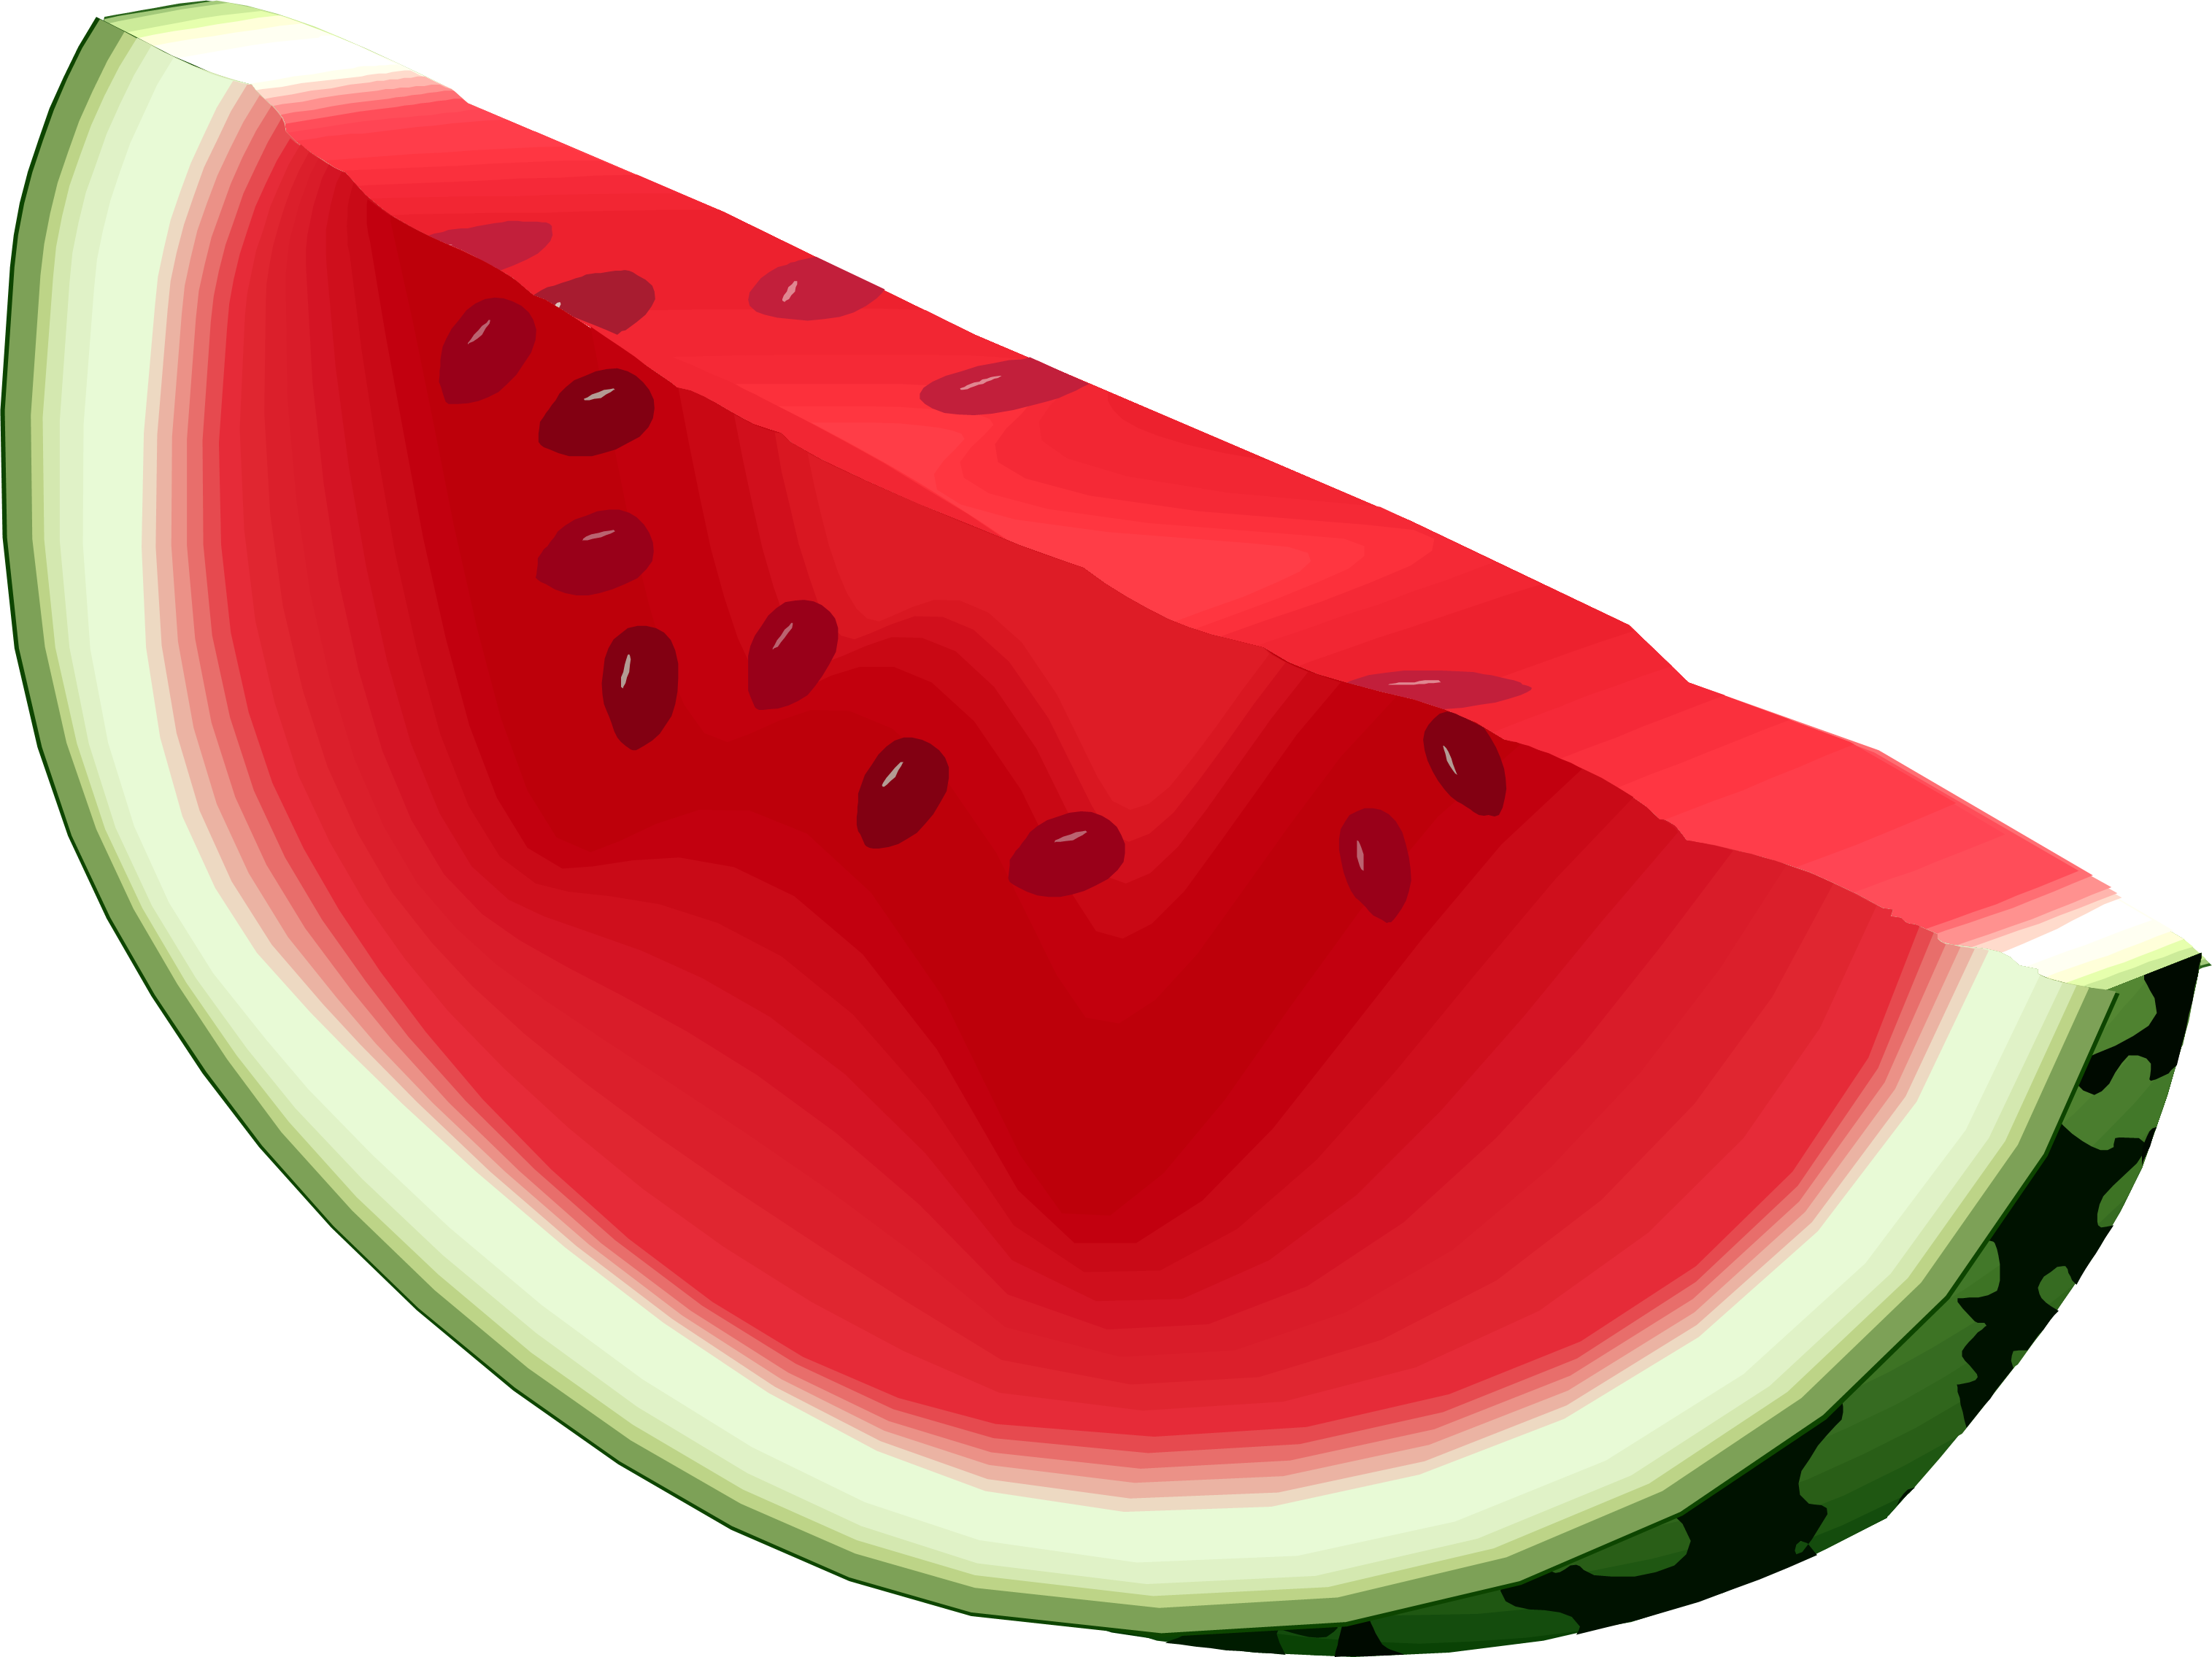 Watermelon clipart transparent background. Png images free download